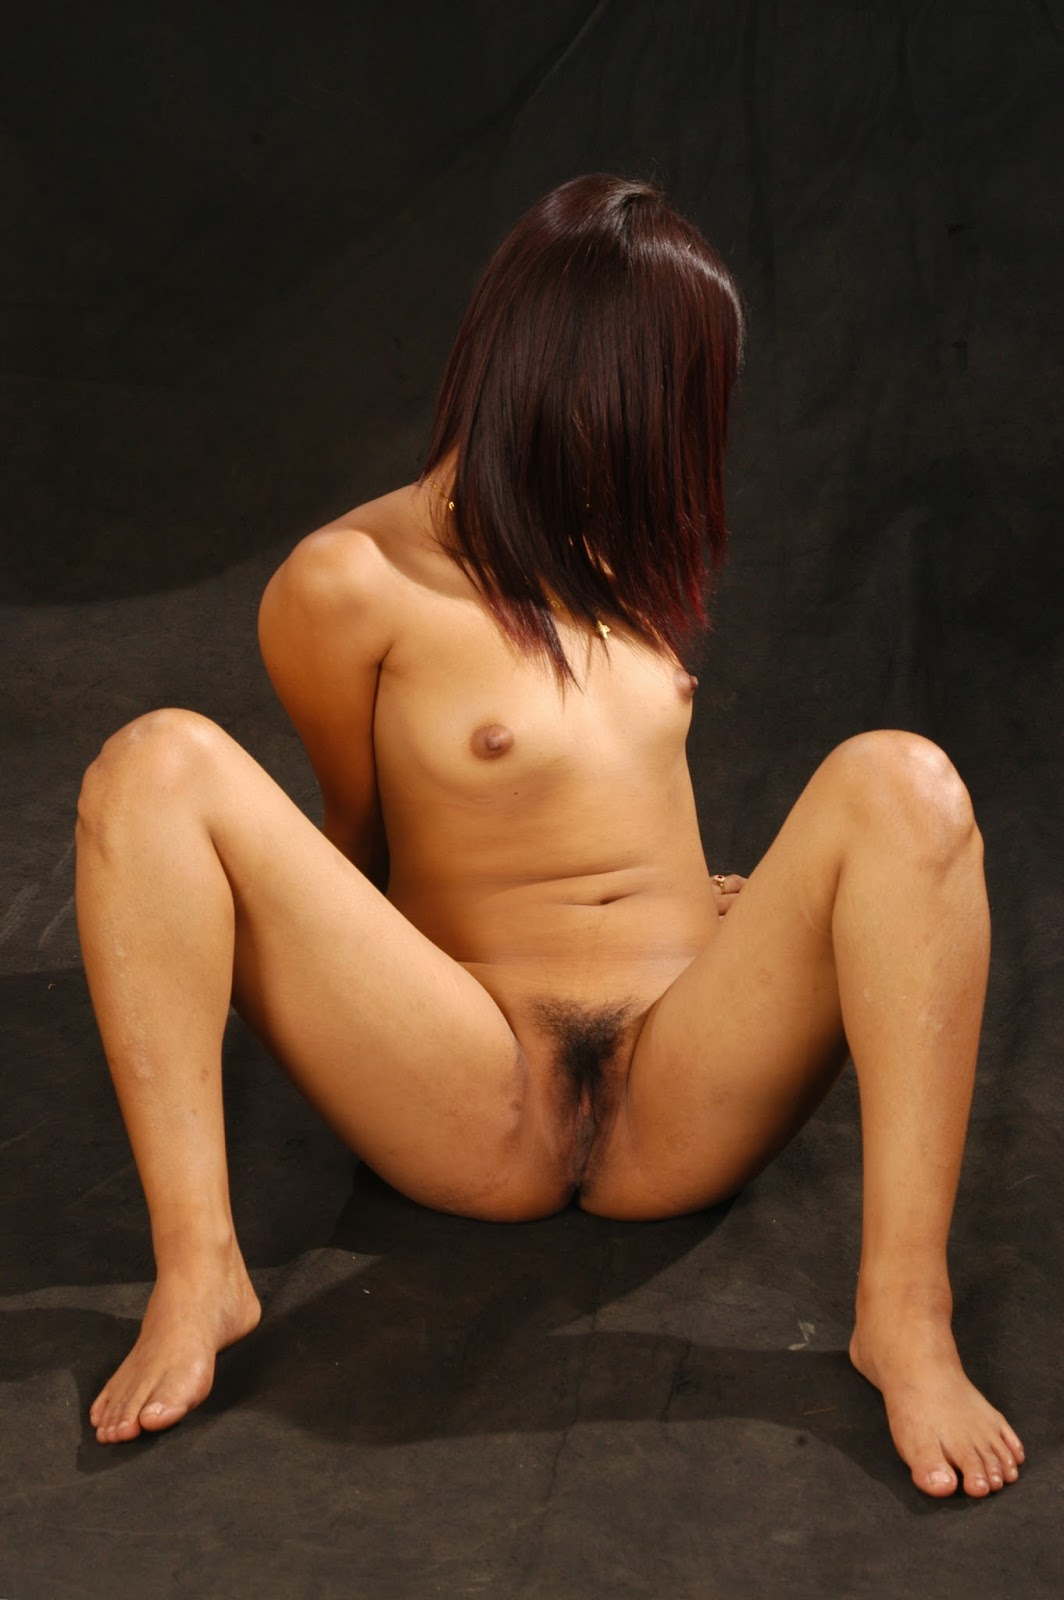 Nude photo of myanmar — img 13